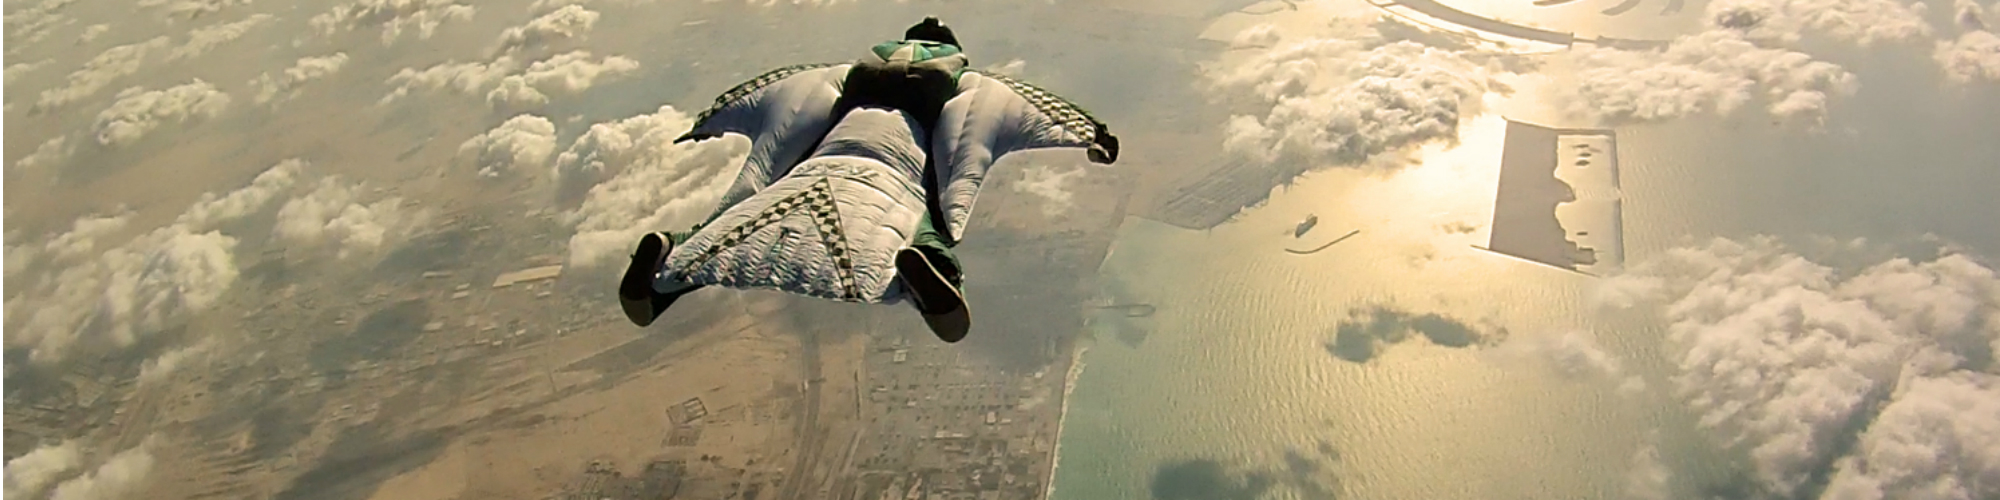 "Today, ""Point Break"" is most well-known for its visually stunning action sequences featuring intense surfing scenes and breathtaking skydiving maneuvers and is now being remade for a new generation. Where the original 1991 film showcased skydiving as the pinnacle of extreme, the updated remake is taking it one step further with a wingsuit stunt sequence for the ages."